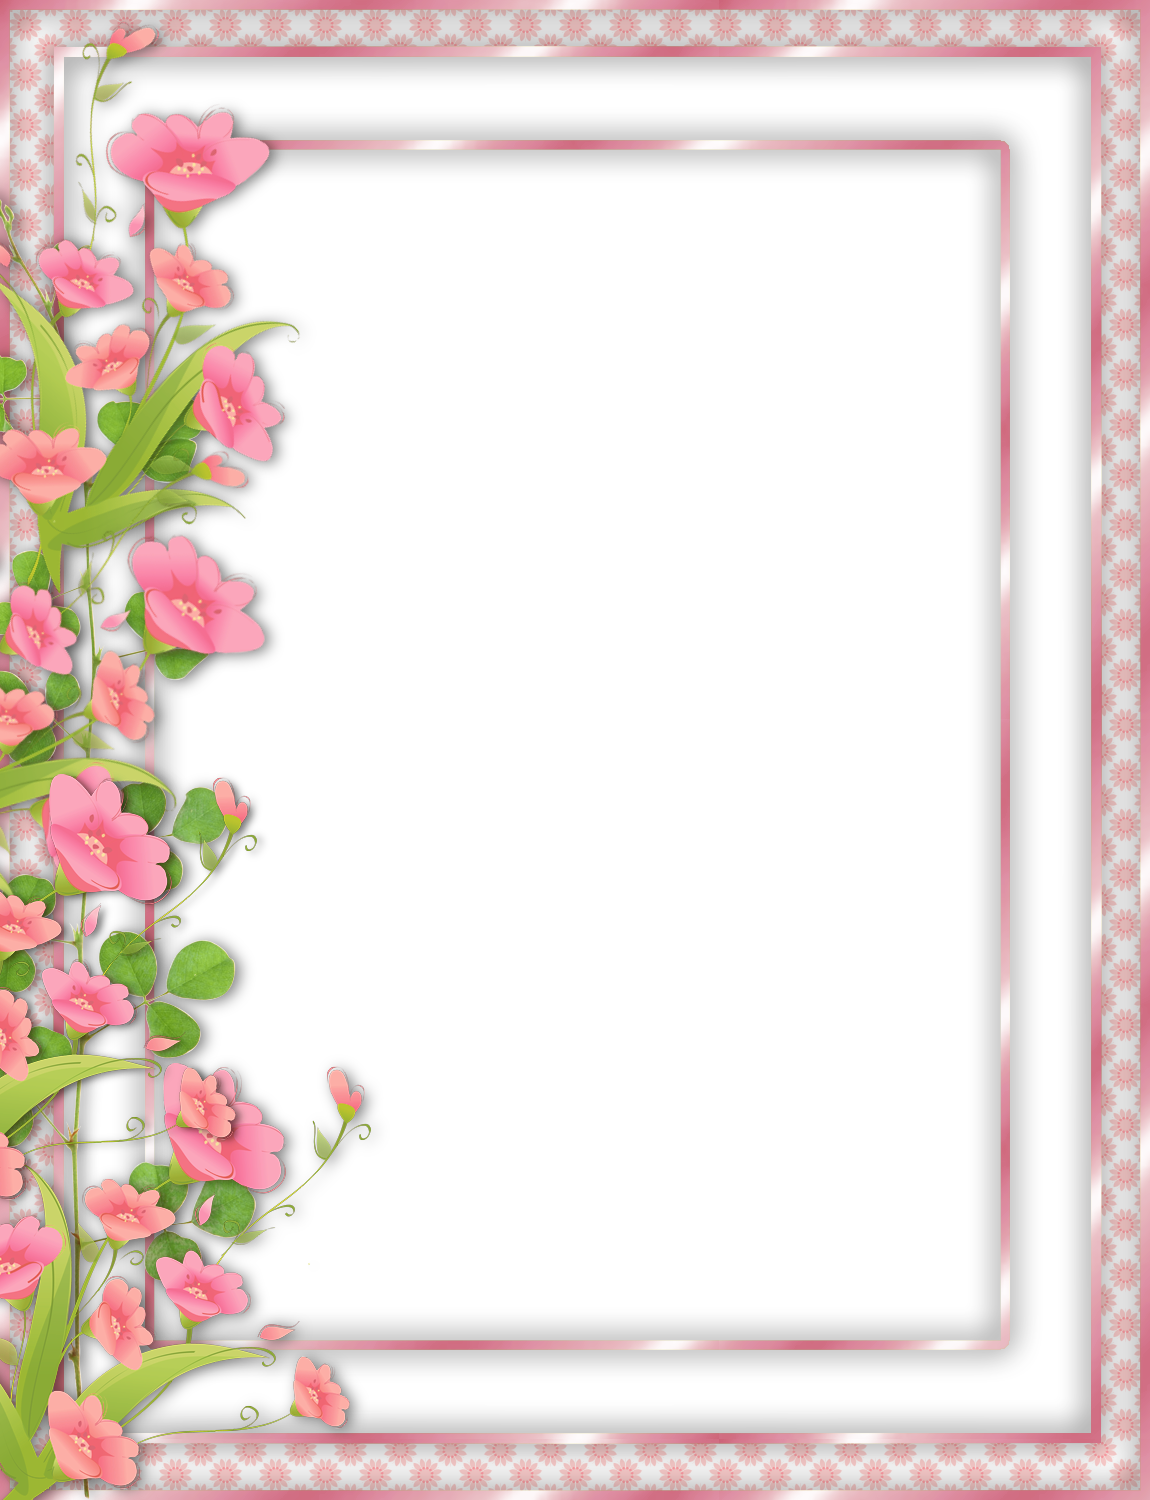 Png frame. Pink transparent with flowers